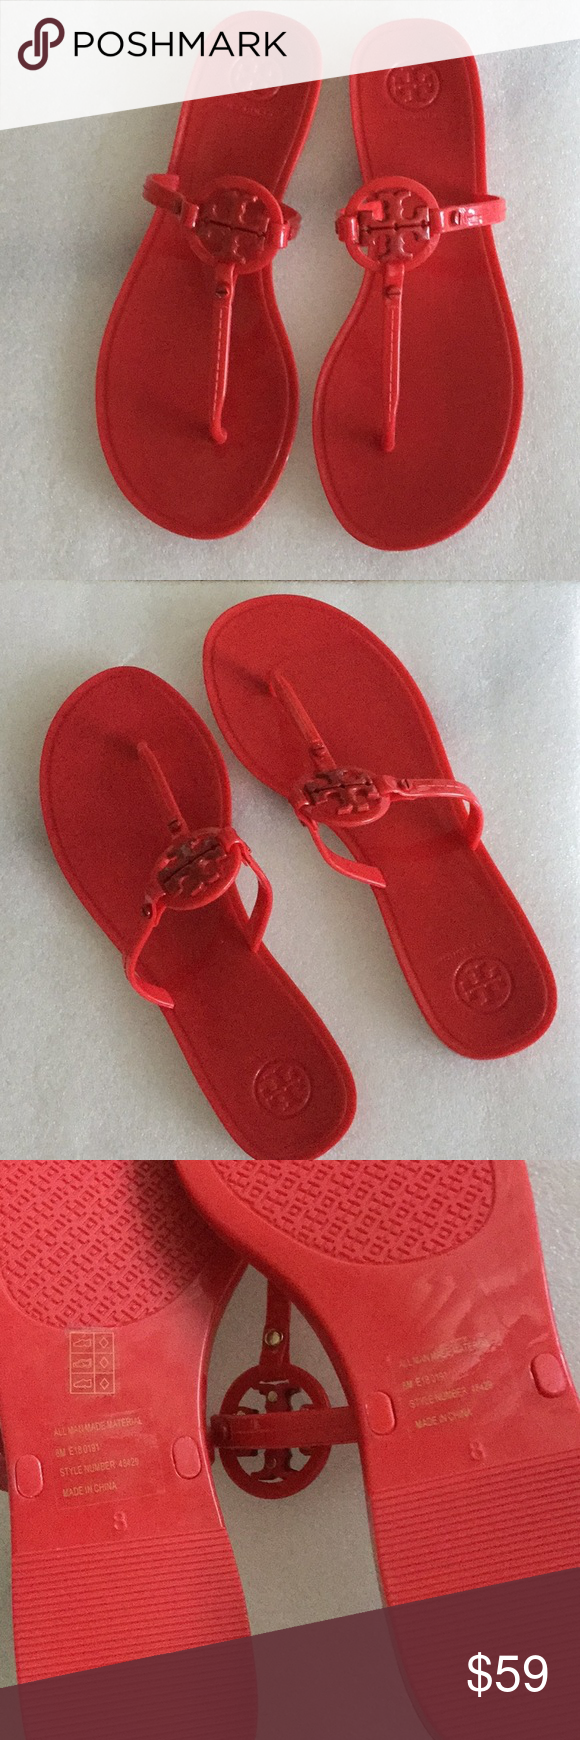 683c15a8b22e TORY BURCH MINI MILLER NEW! Sleek and simple thong sandals in Brilliant Red.  Tory